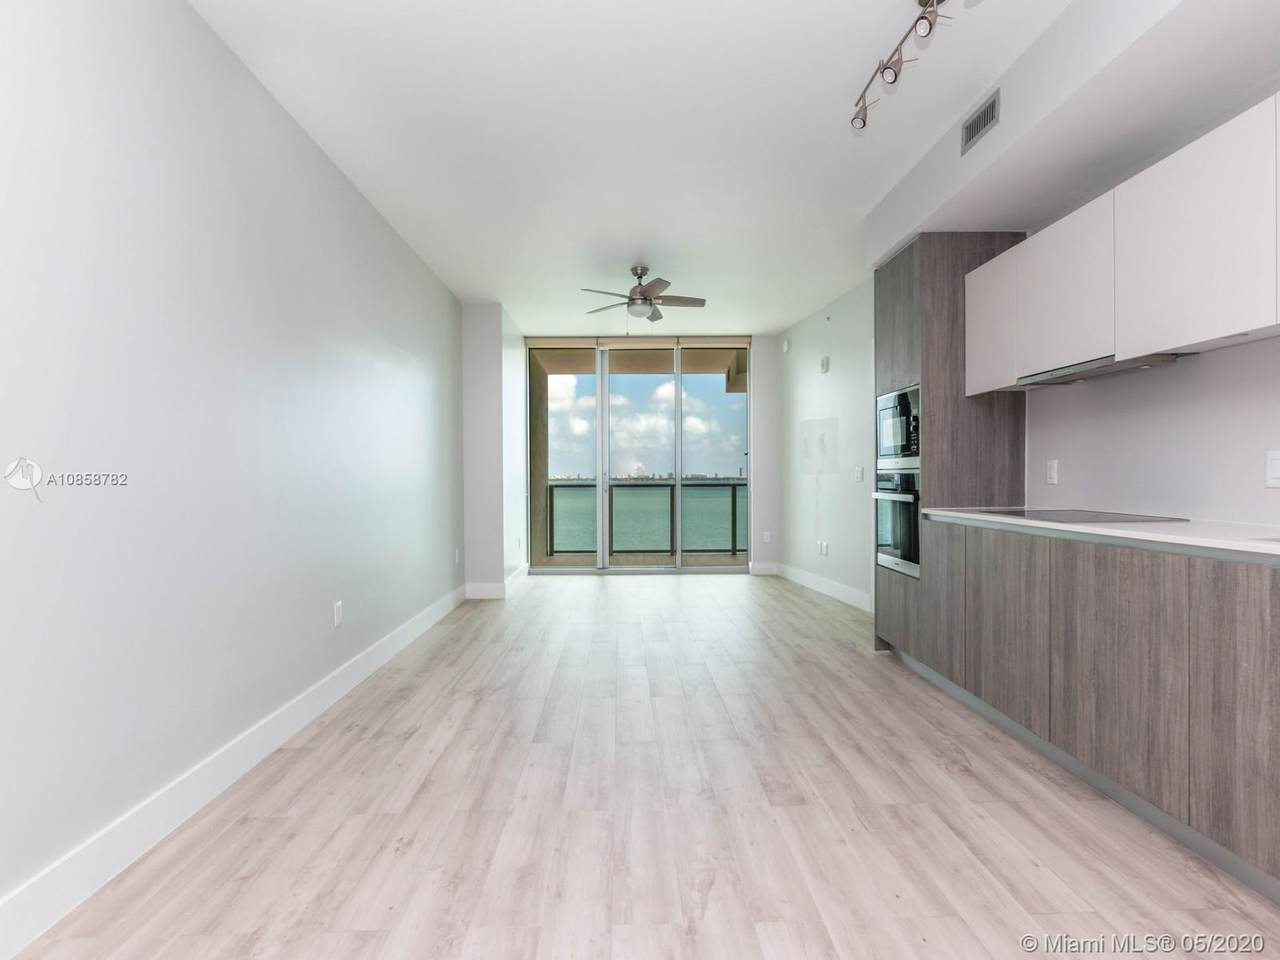 2900 7th Ave - Photo 1